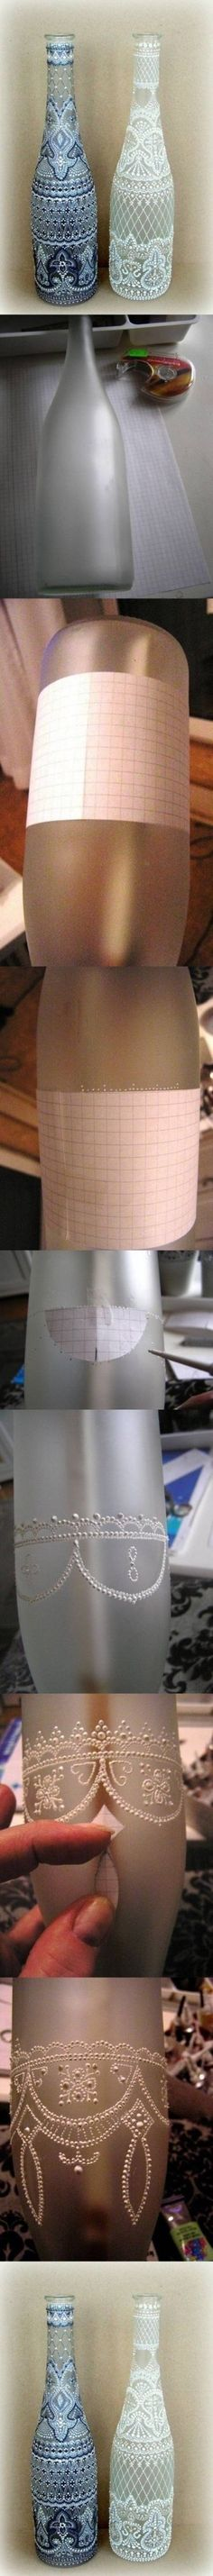 DIY Spot Painting Wine Bottle - cut off the bottom and place over a Candle Impressions flameless candle to make this a stunning lantern